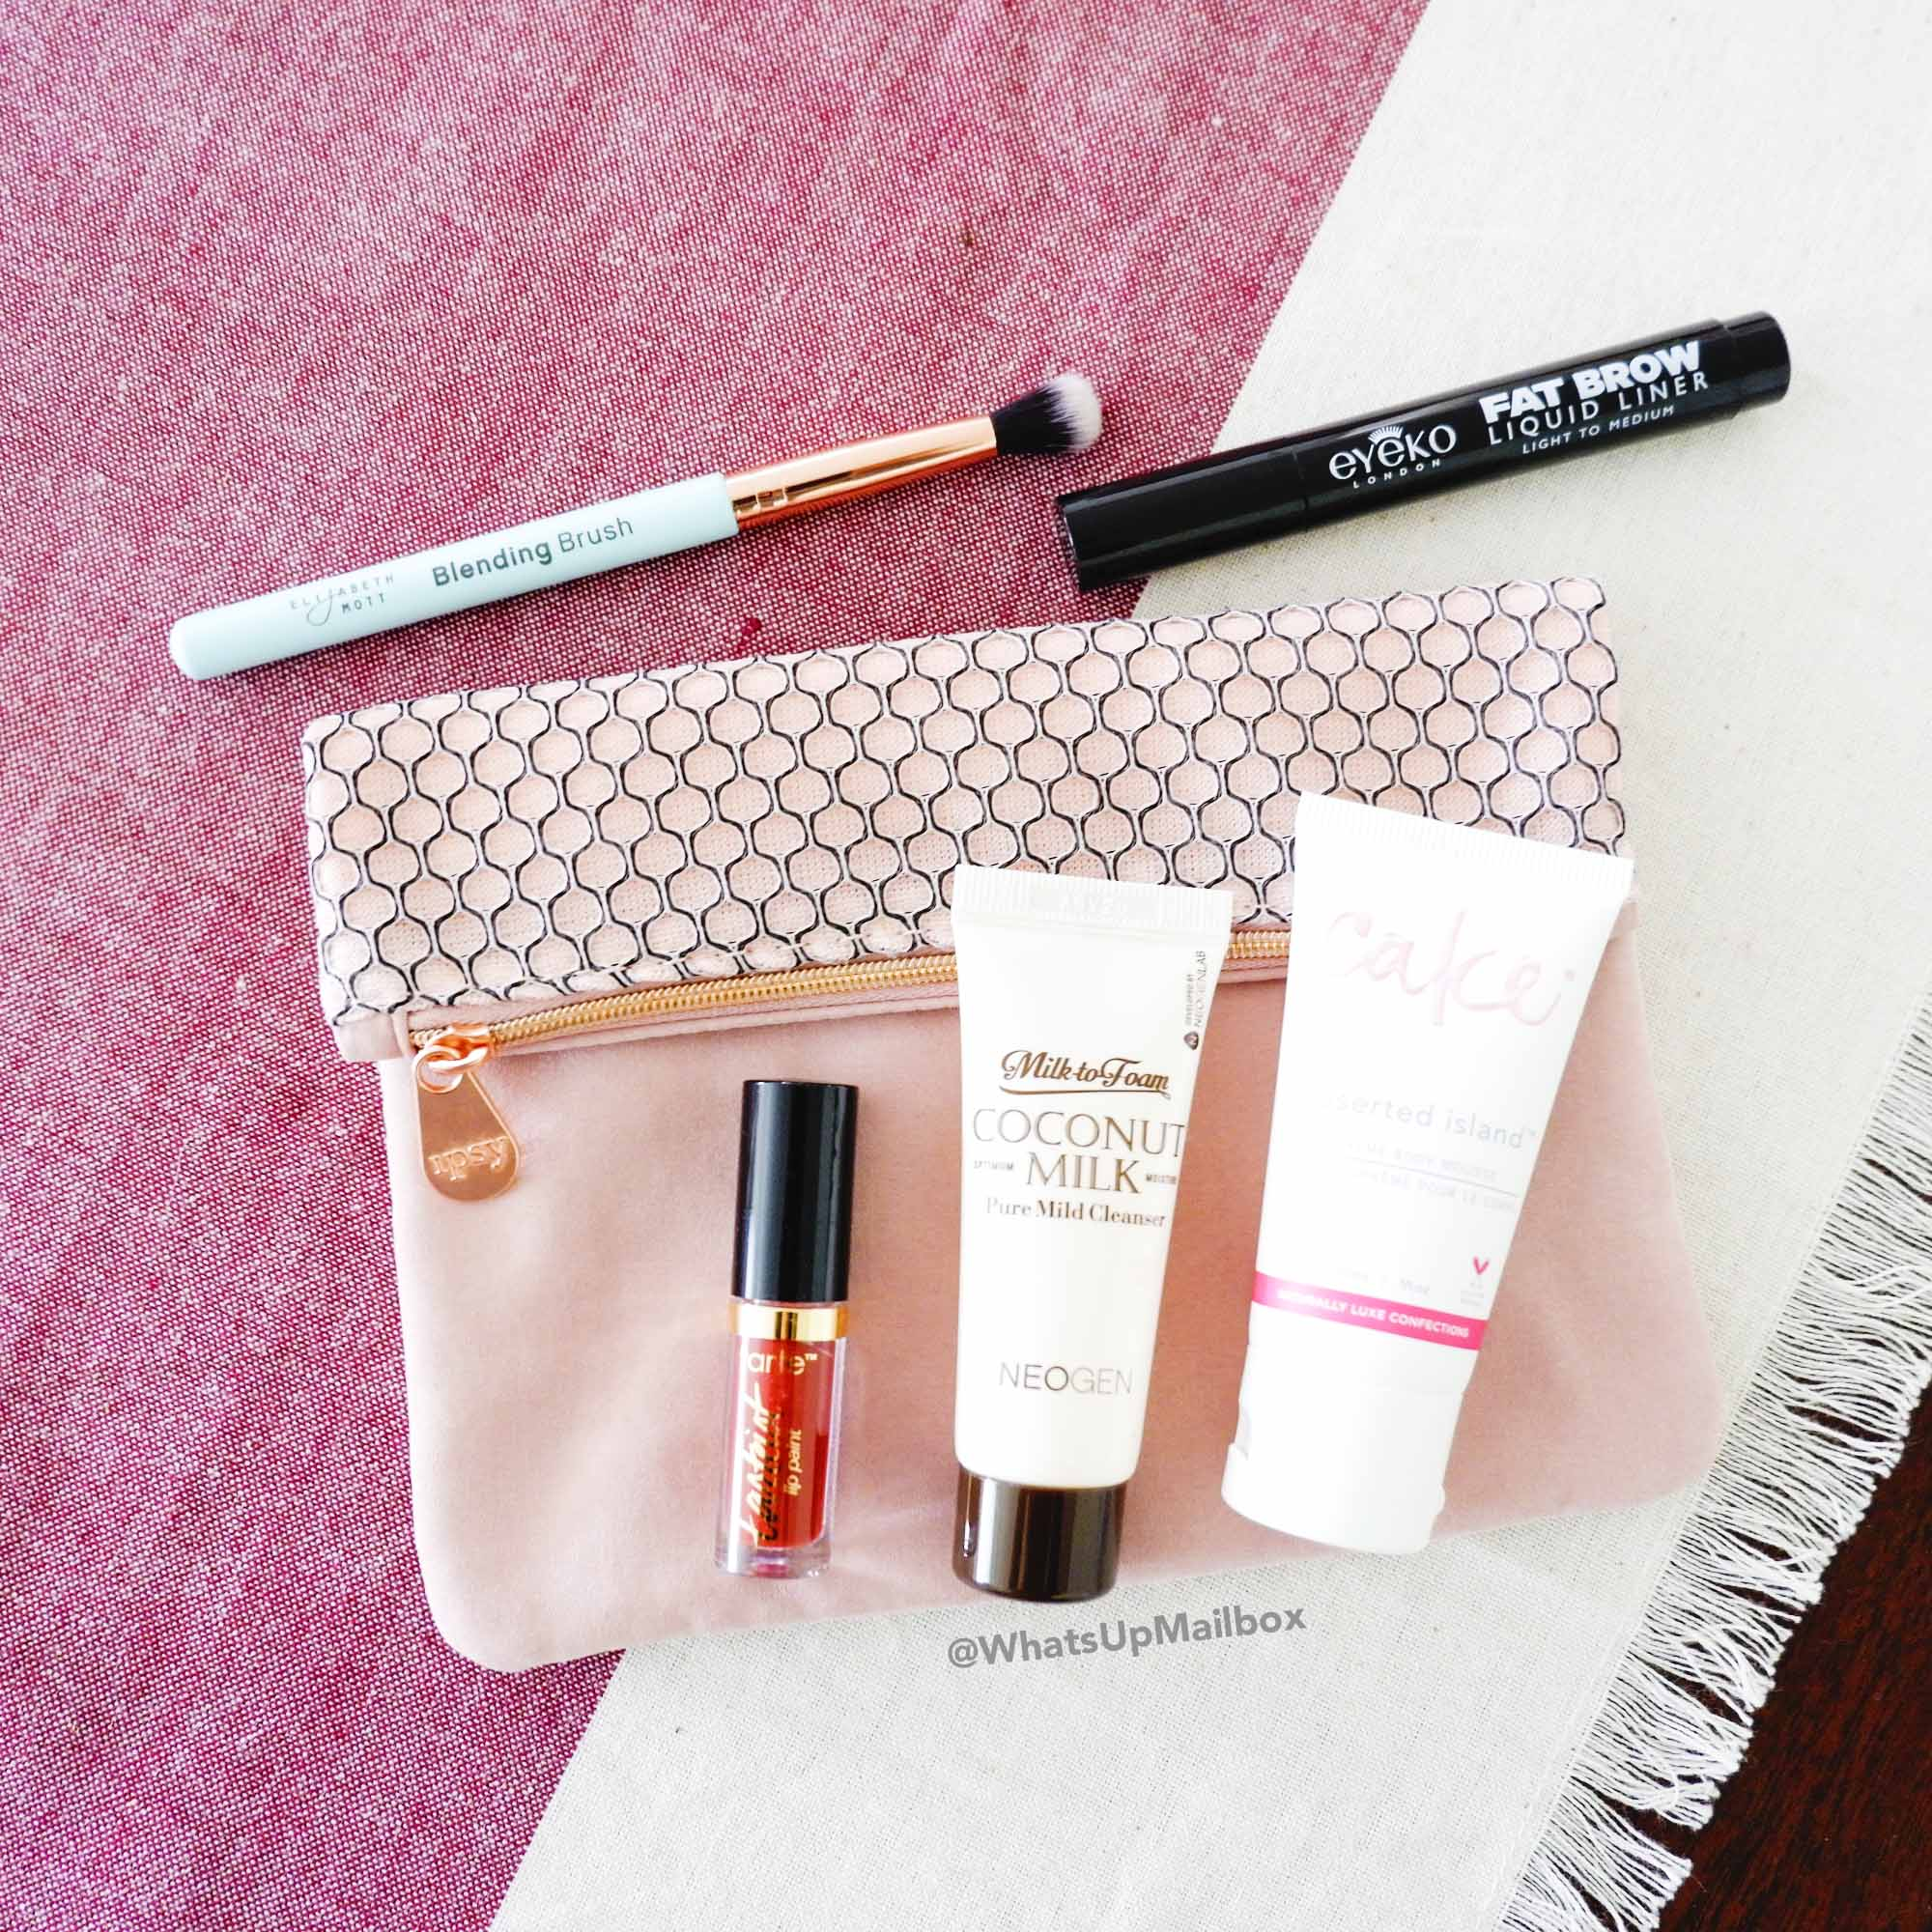 Ipsy March 2017 Glam Bag Review!